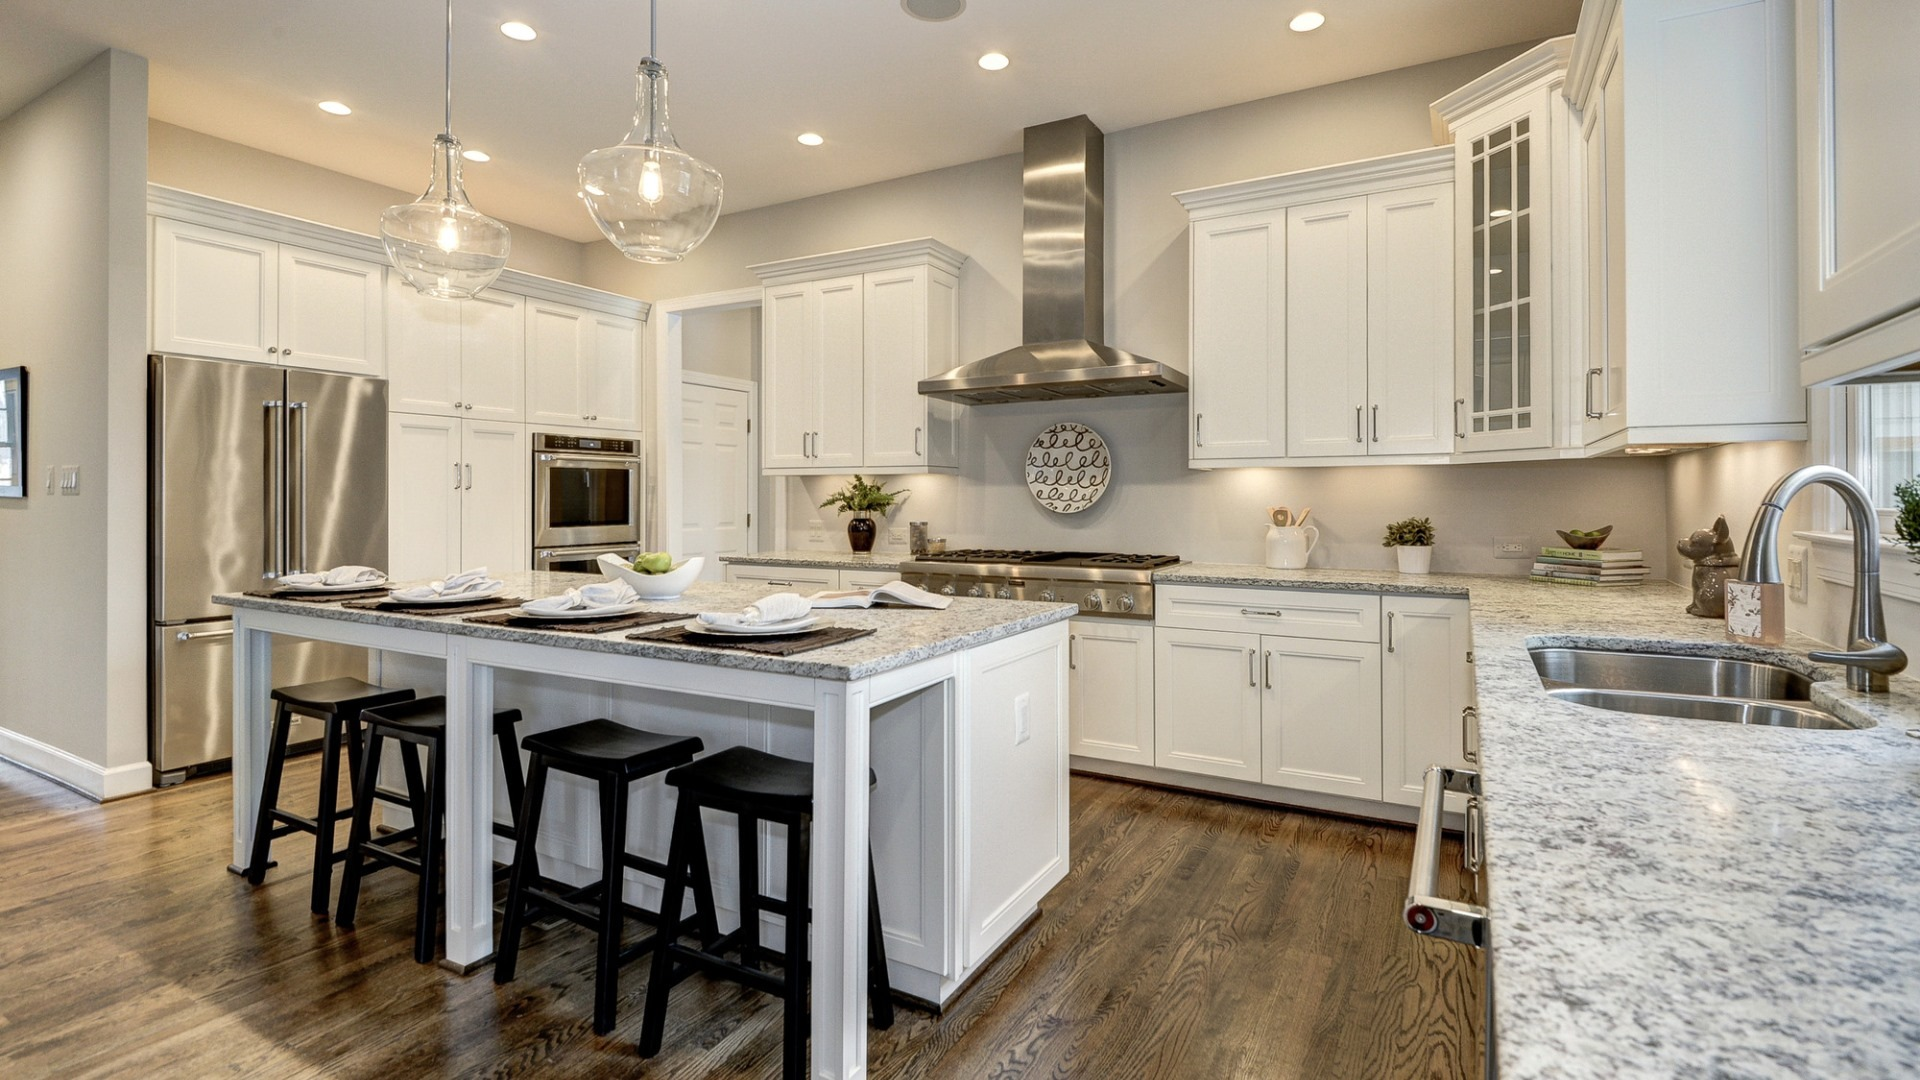 The gourmet kitchen in a Grayson former model home, which may vary somewhat from the home planned at Vale Crest Homesite 5. Some optional features shown. Please see sales manager for details.